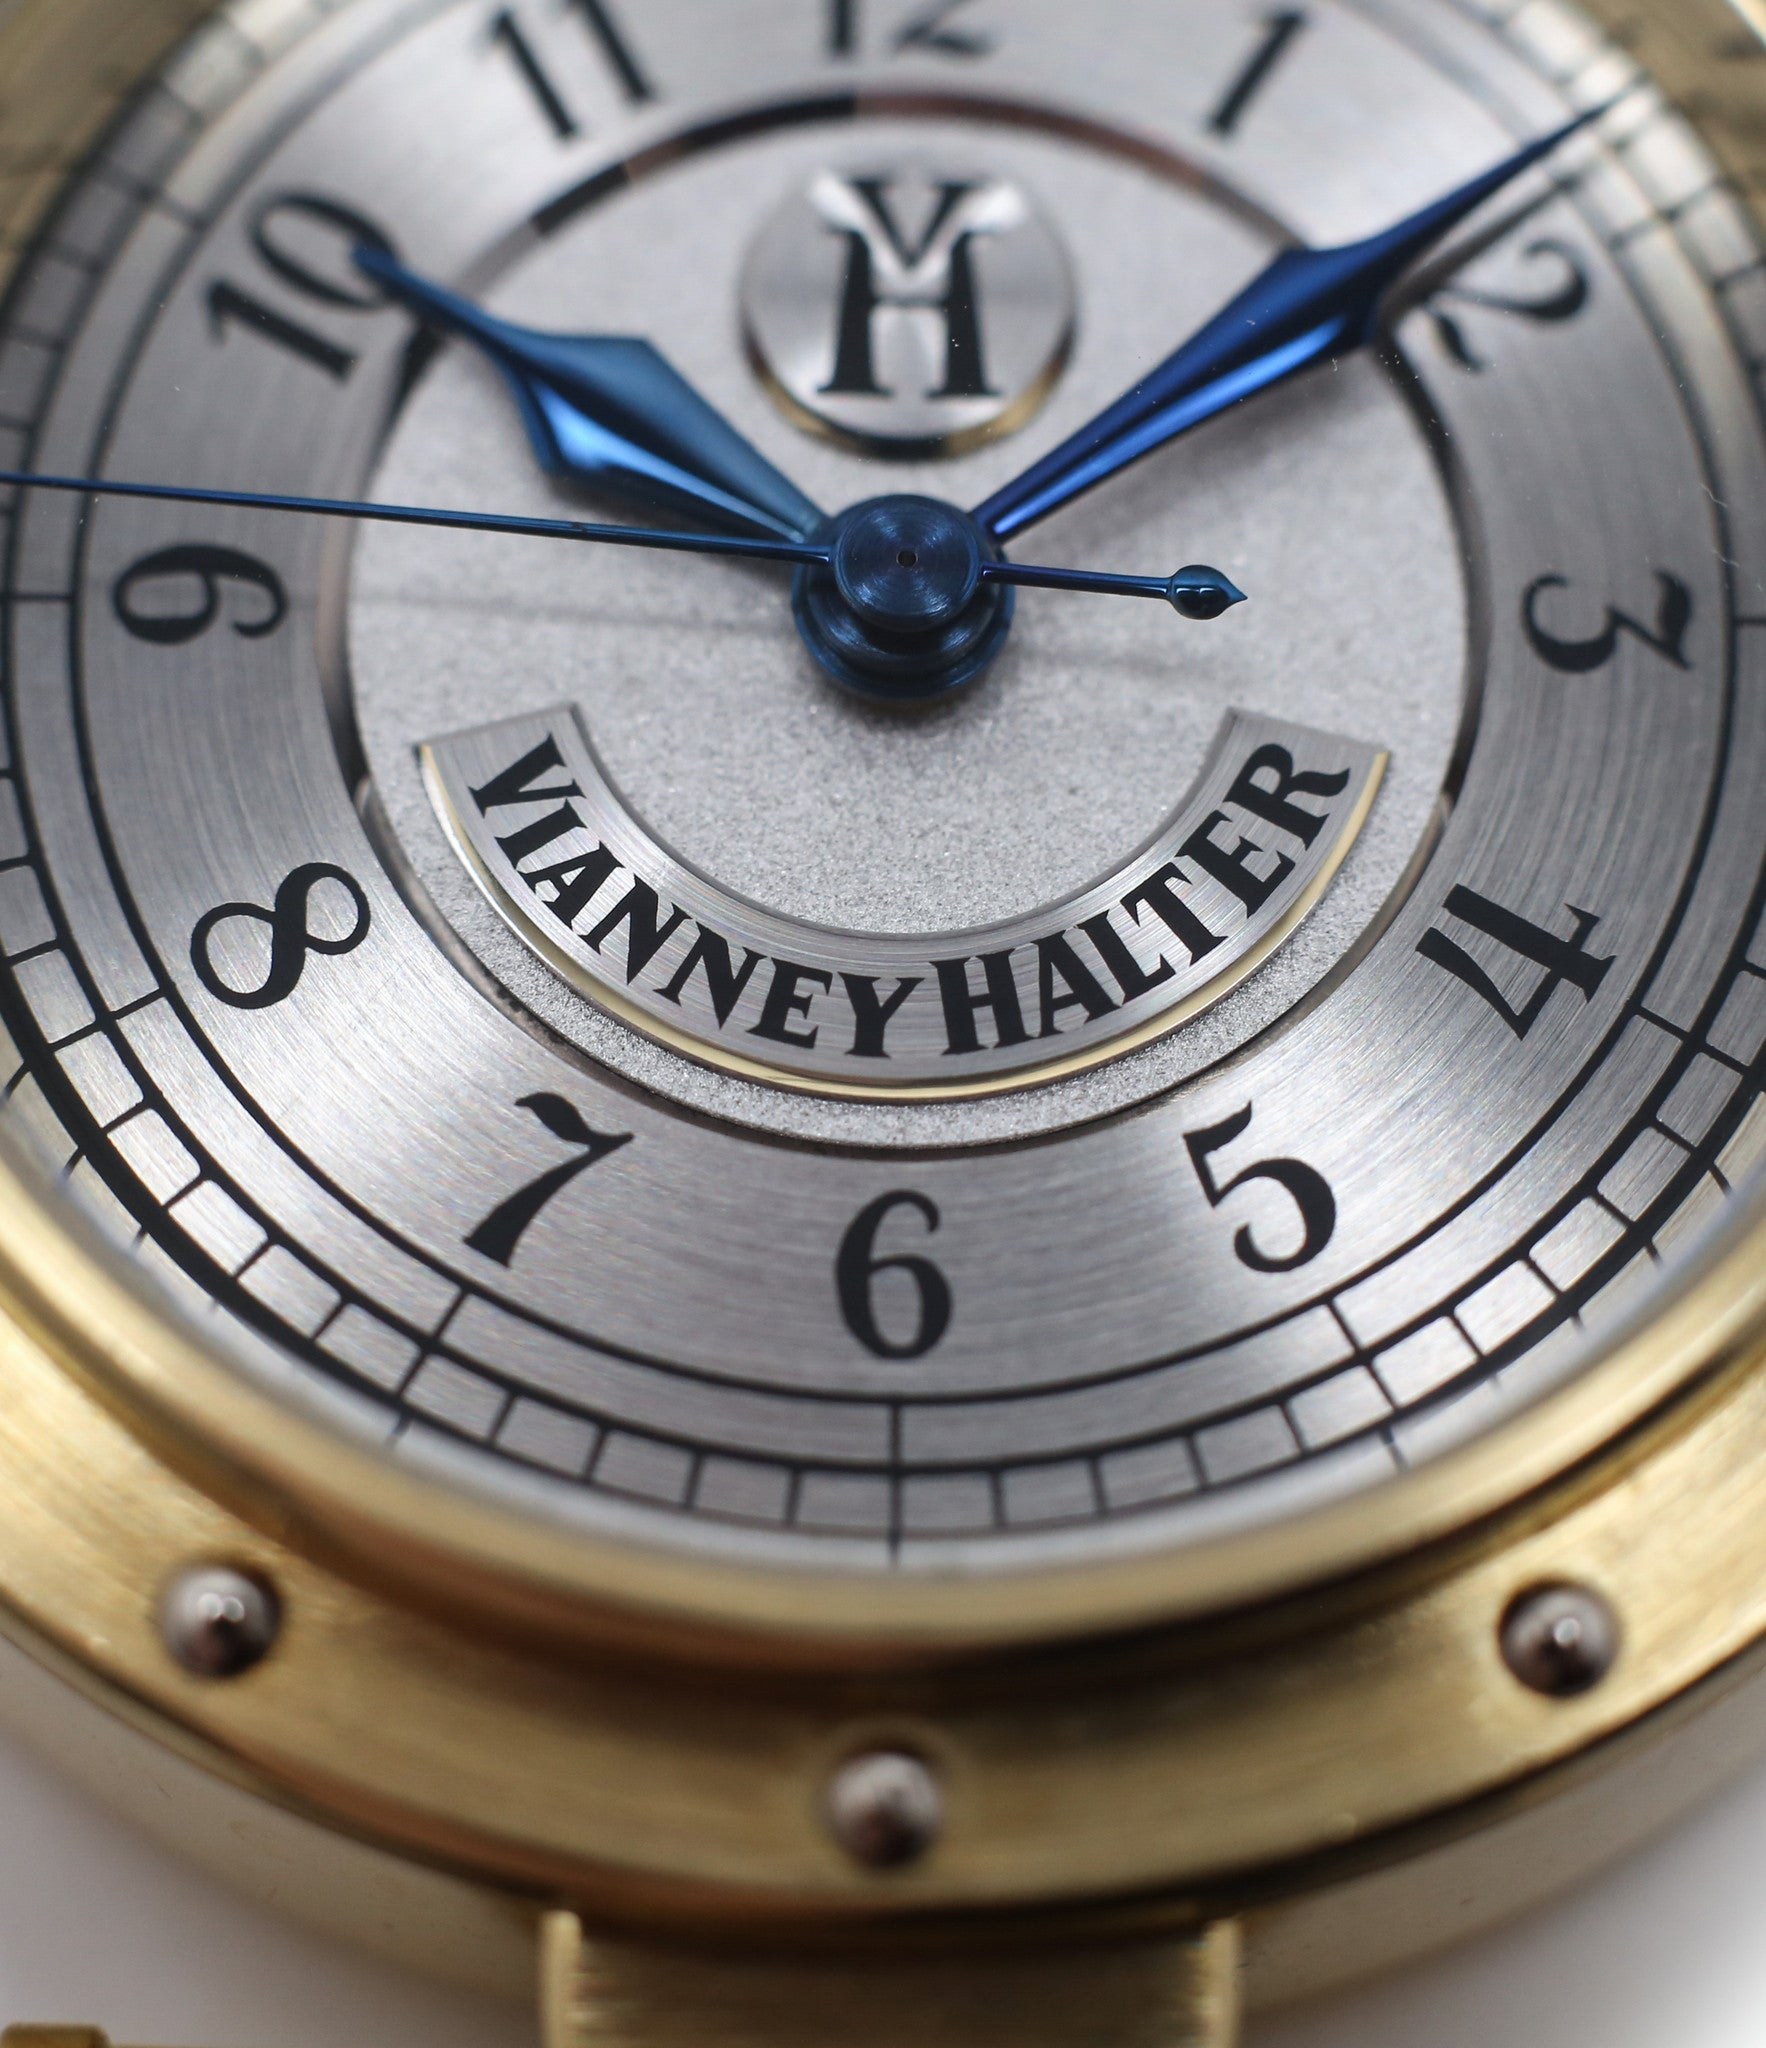 rivets case buy Vianney Halter Classic yellow gold time-only dress watch at A Collected Man the approve seller of independent watchmakers